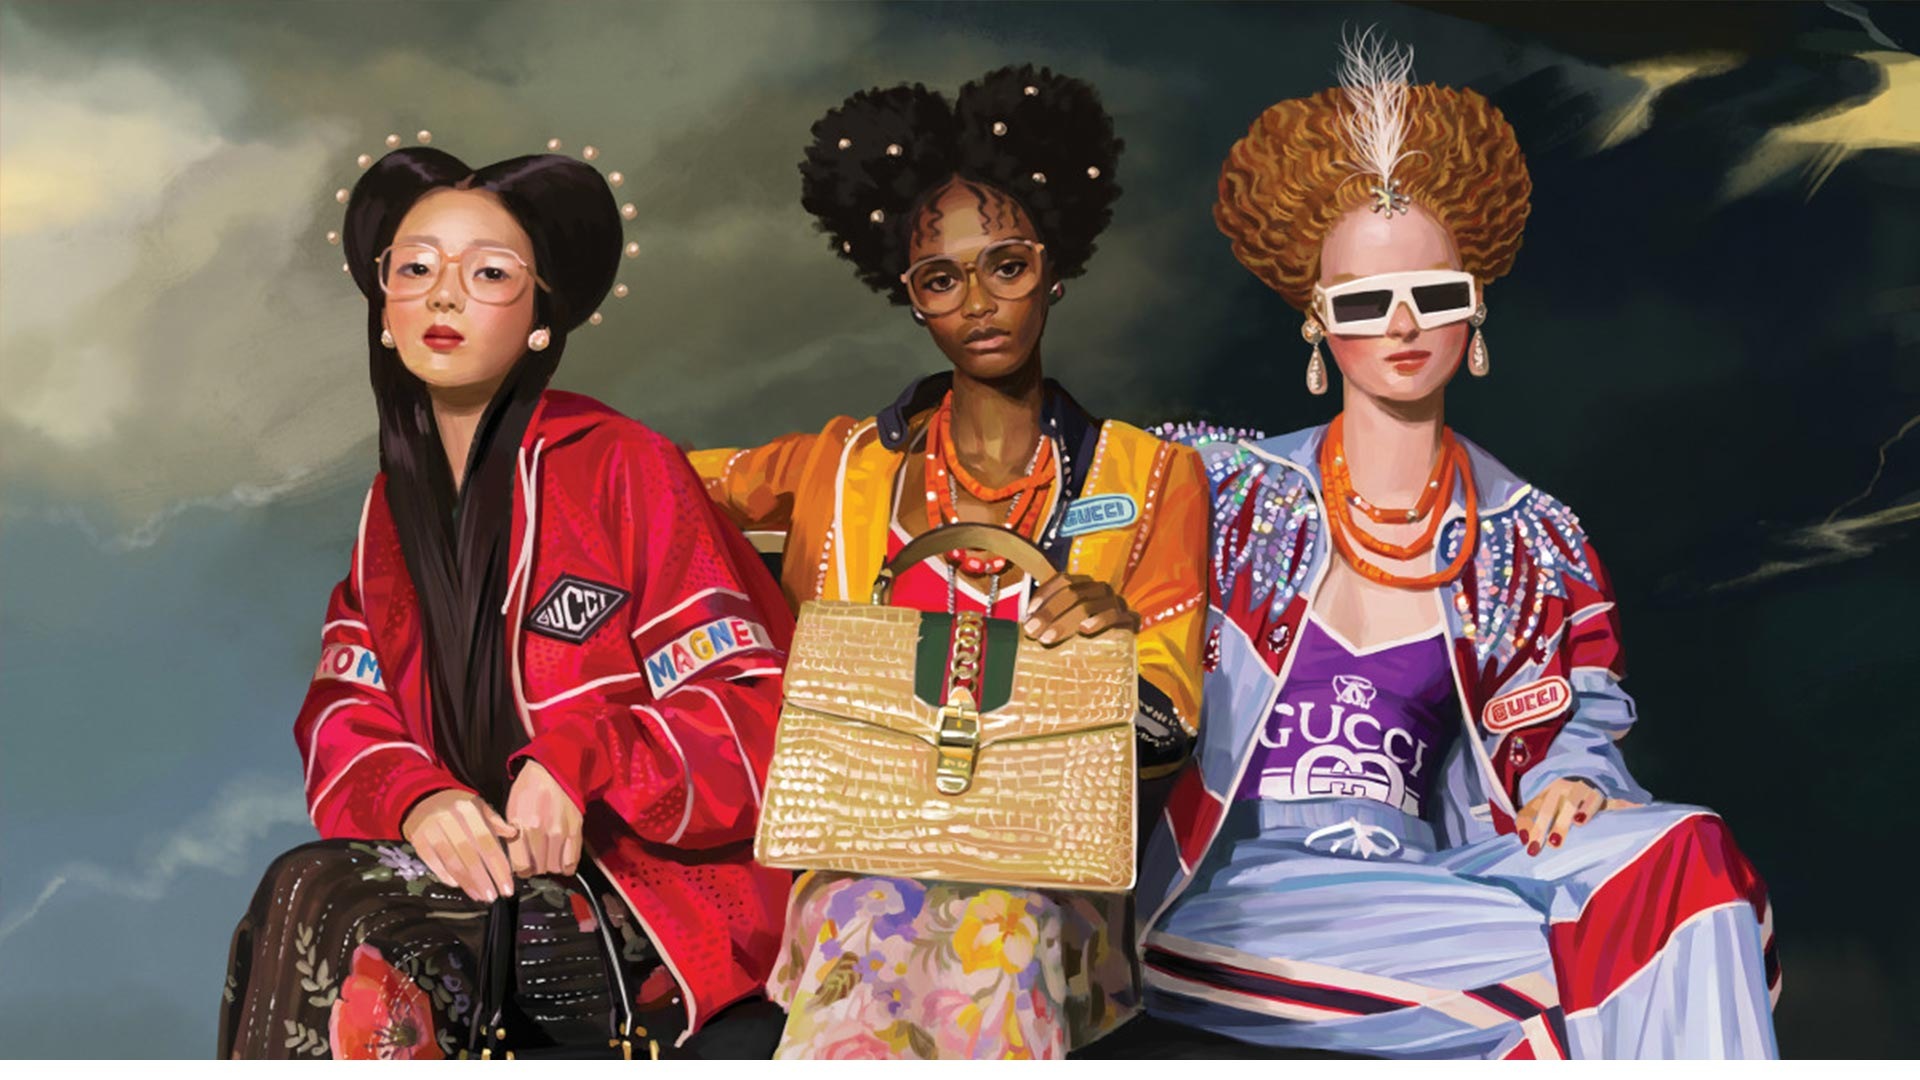 Drie vrouwen poseren met Gucci-outfits.